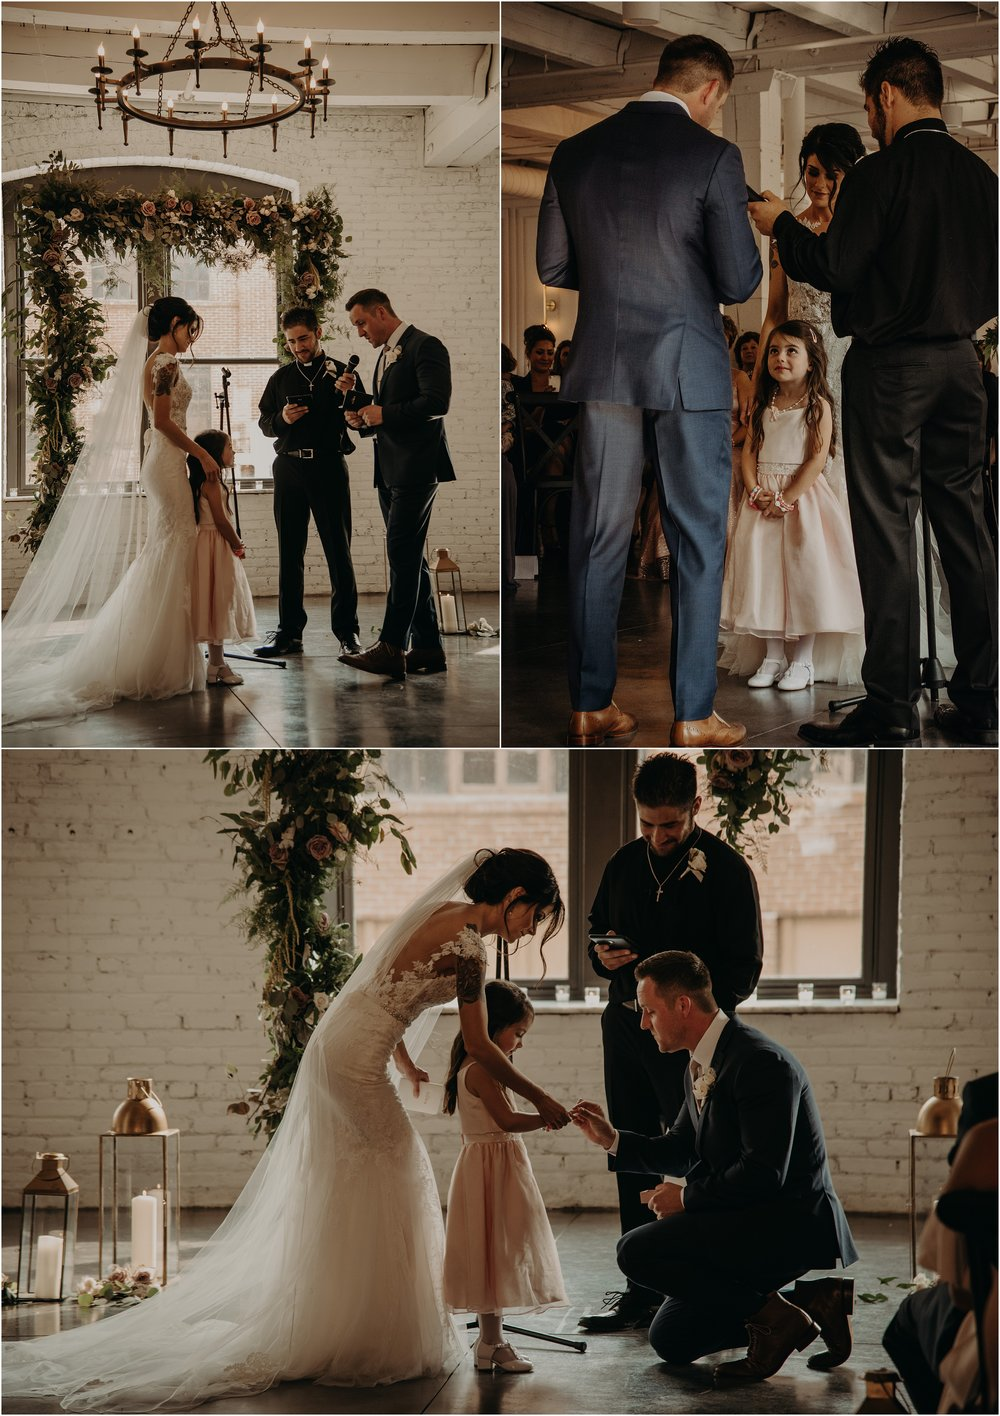 The groom reads his vows to his new stepdaughter and gives her a ring to wear too